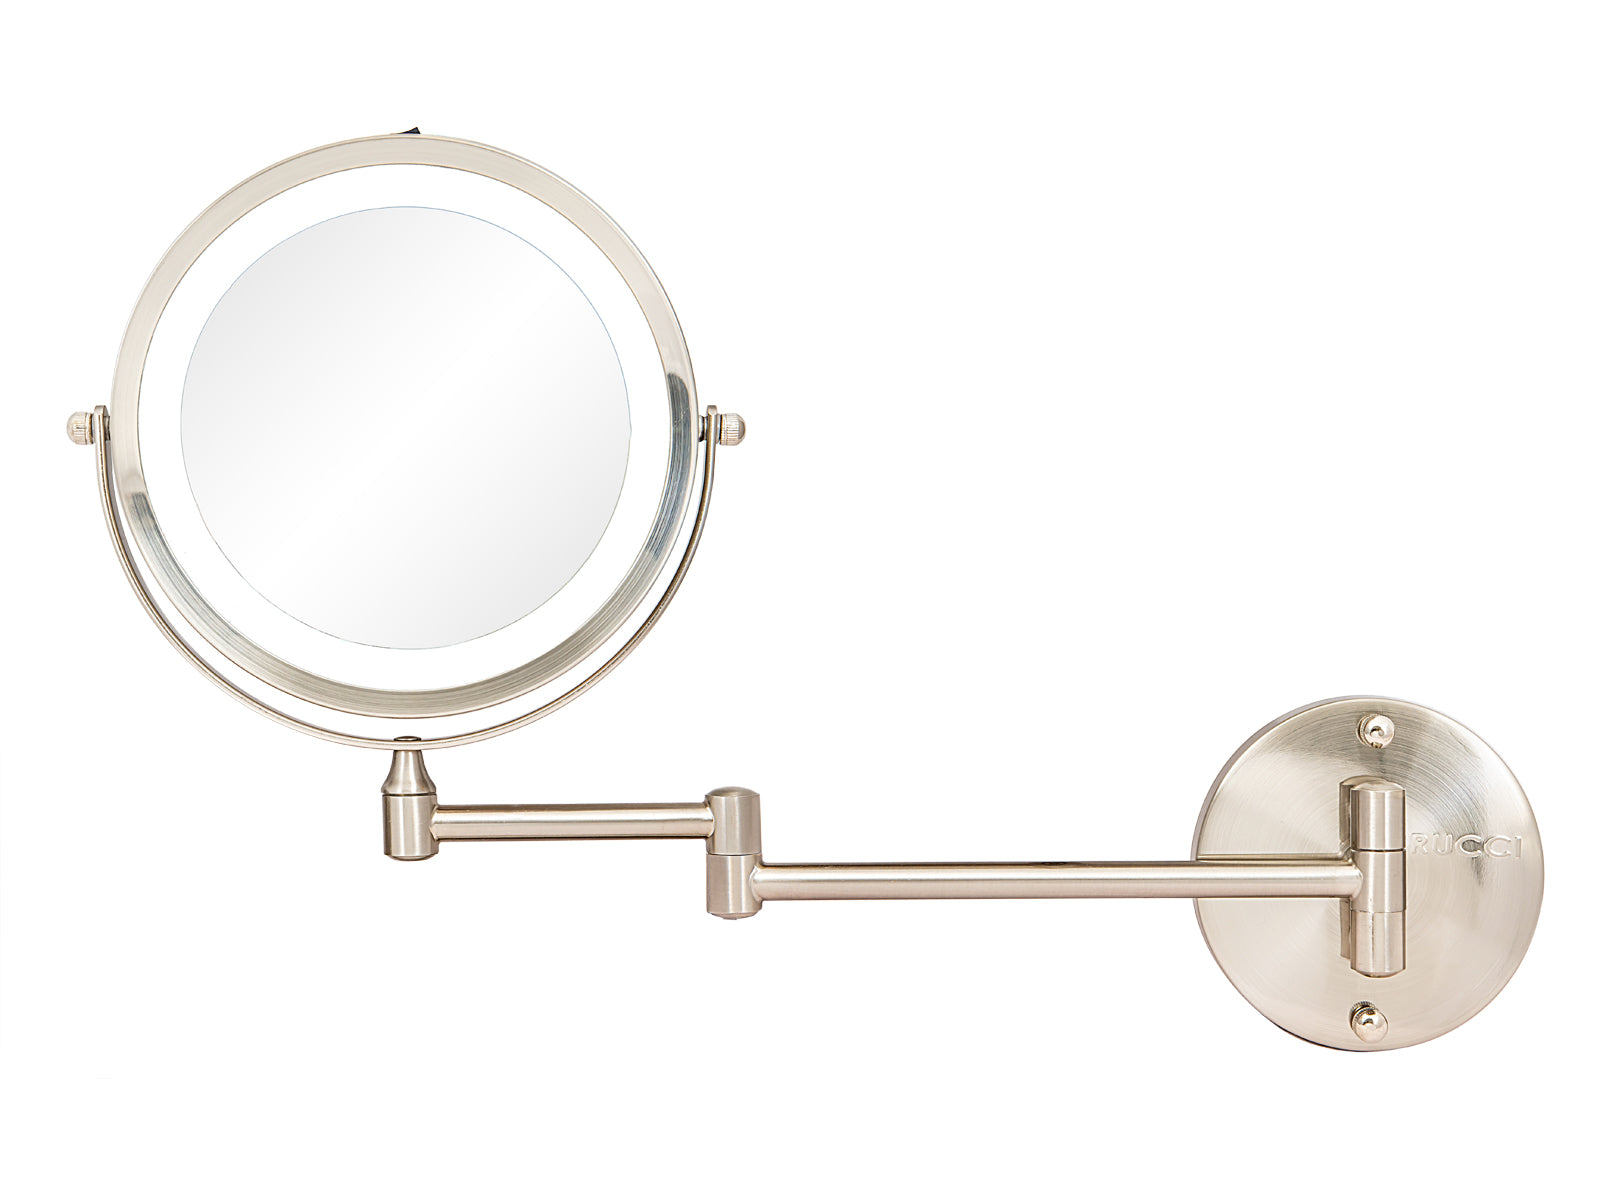 Modern Lighted Wall Mount Magnifying Makeup Mirror - Battery Operated 1X & 10X (M1001 / M1002)